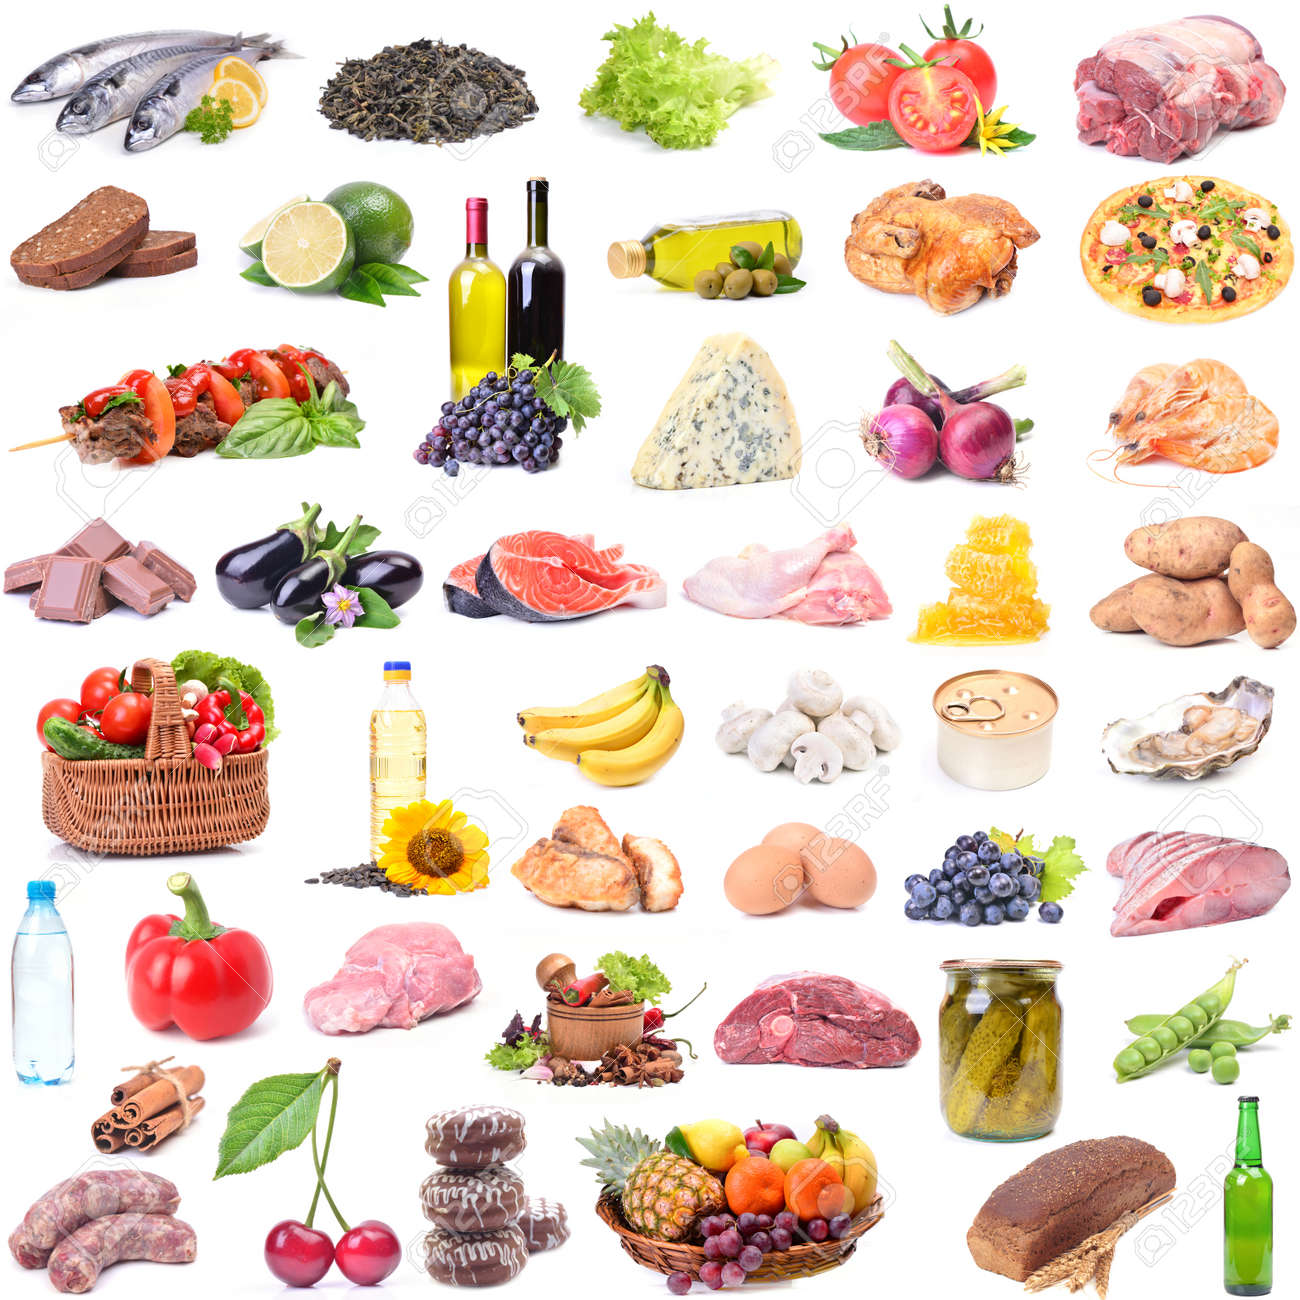 Catalog Of The Most Various Food Stock Photo, Picture And Royalty Free Image. Image 47555531.